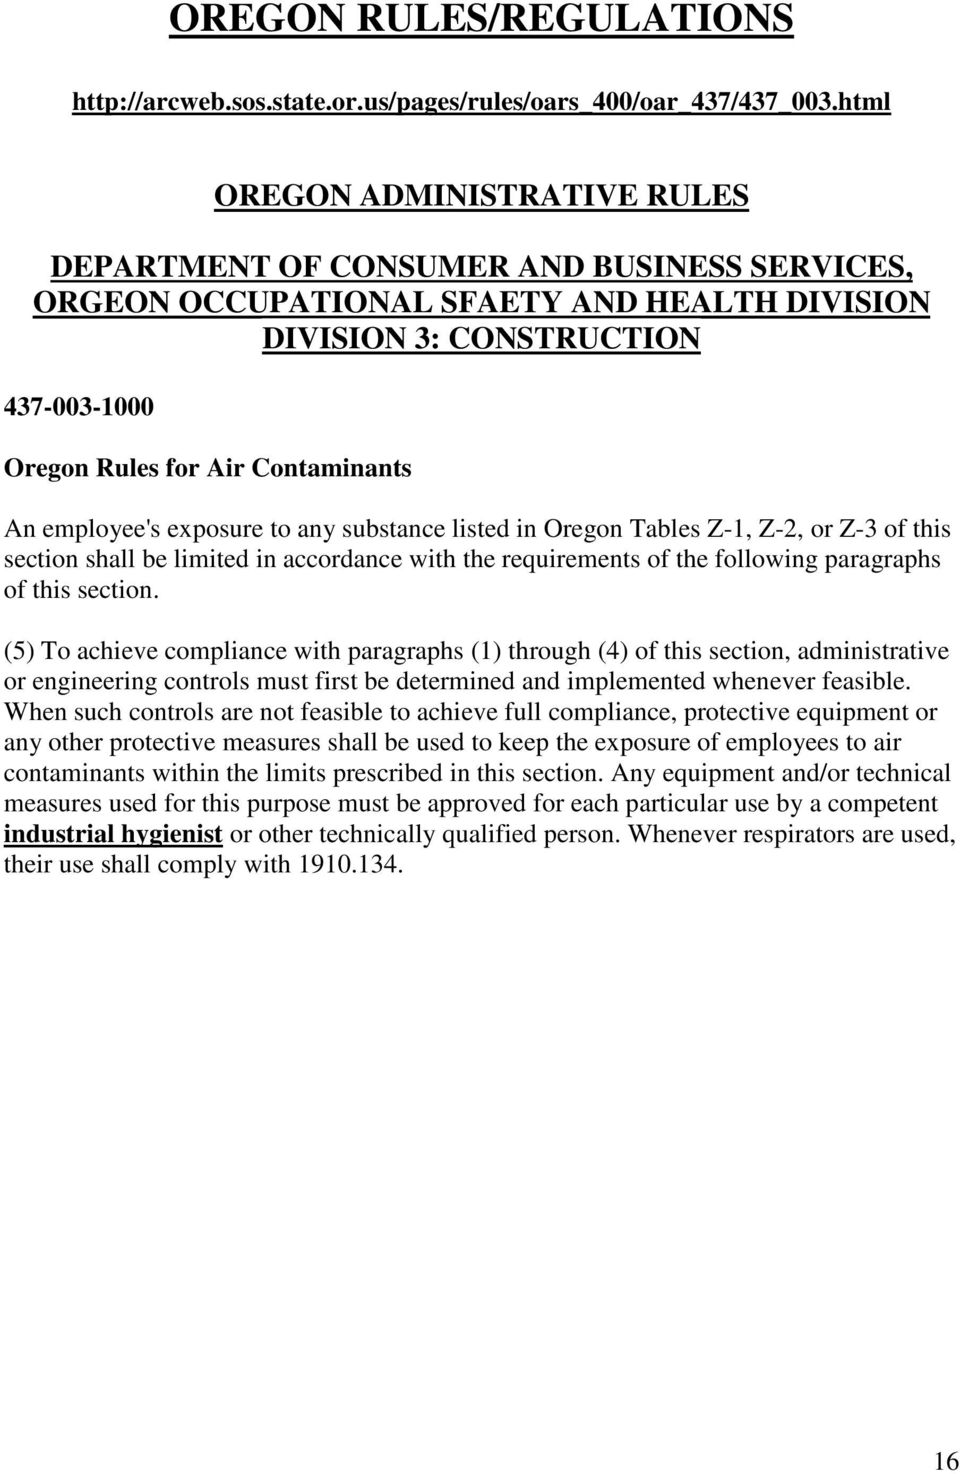 An employee's exposure to any substance listed in Oregon Tables Z-1, Z-2, or Z-3 of this section shall be limited in accordance with the requirements of the following paragraphs of this section.